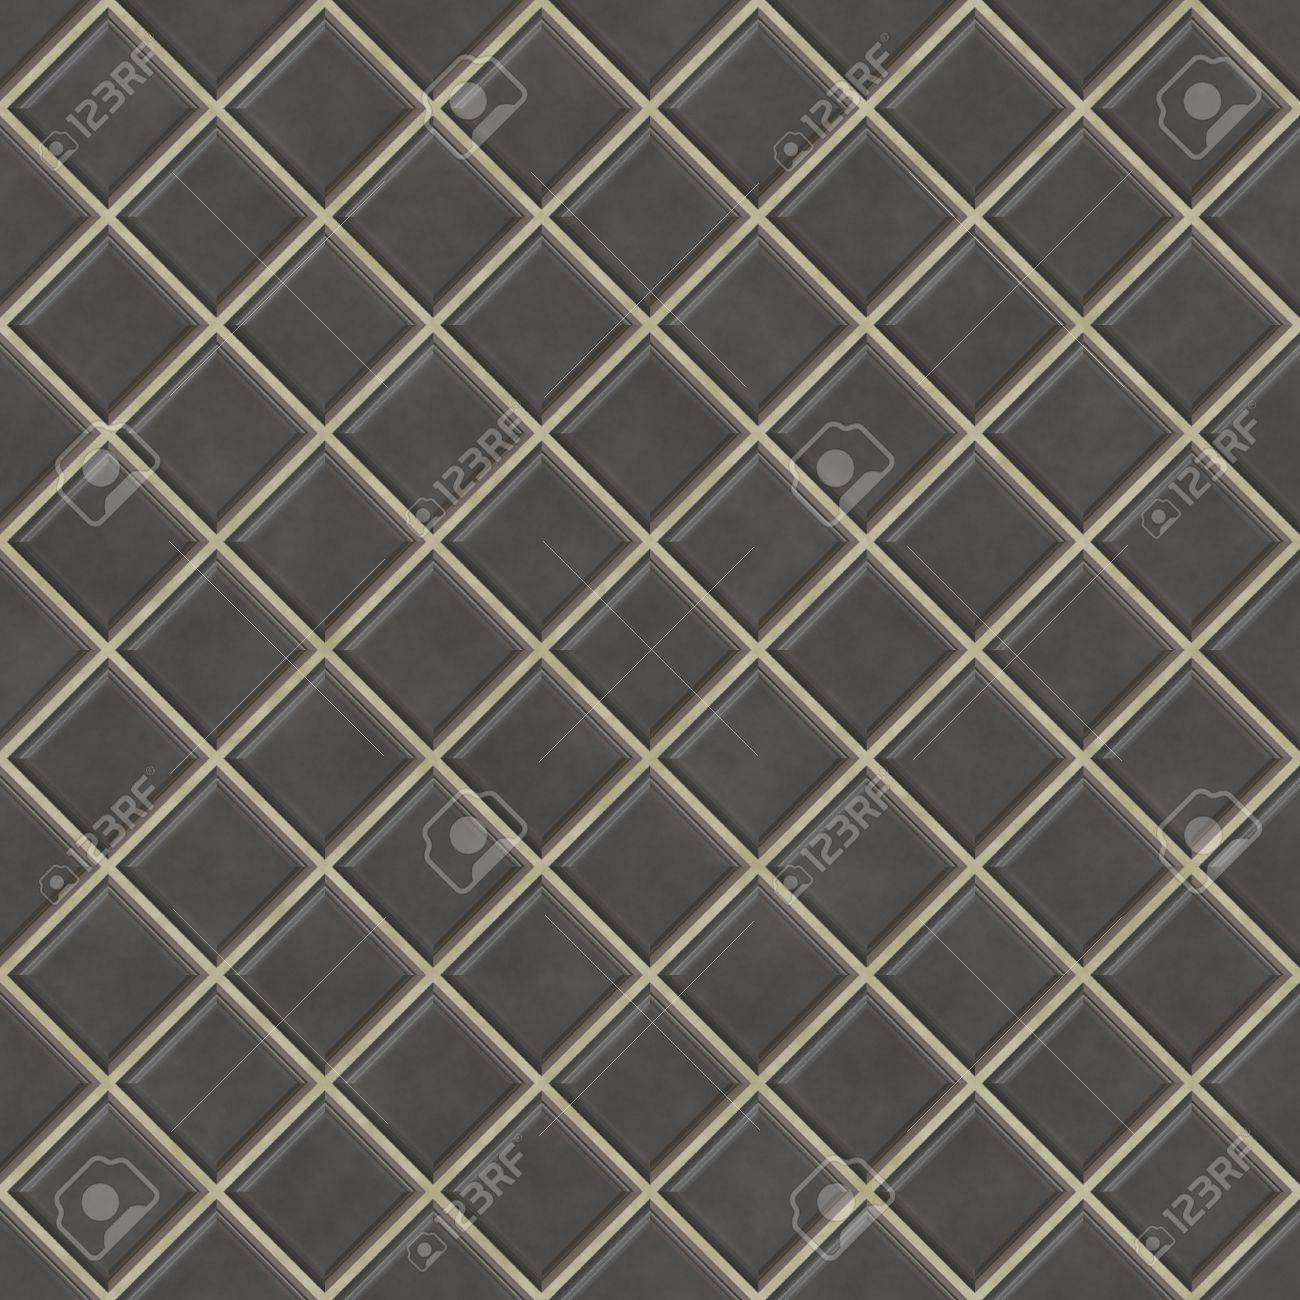 Seamless Kitchen Flooring Seamless Black Tiles Texture Background Kitchen Or Bathroom